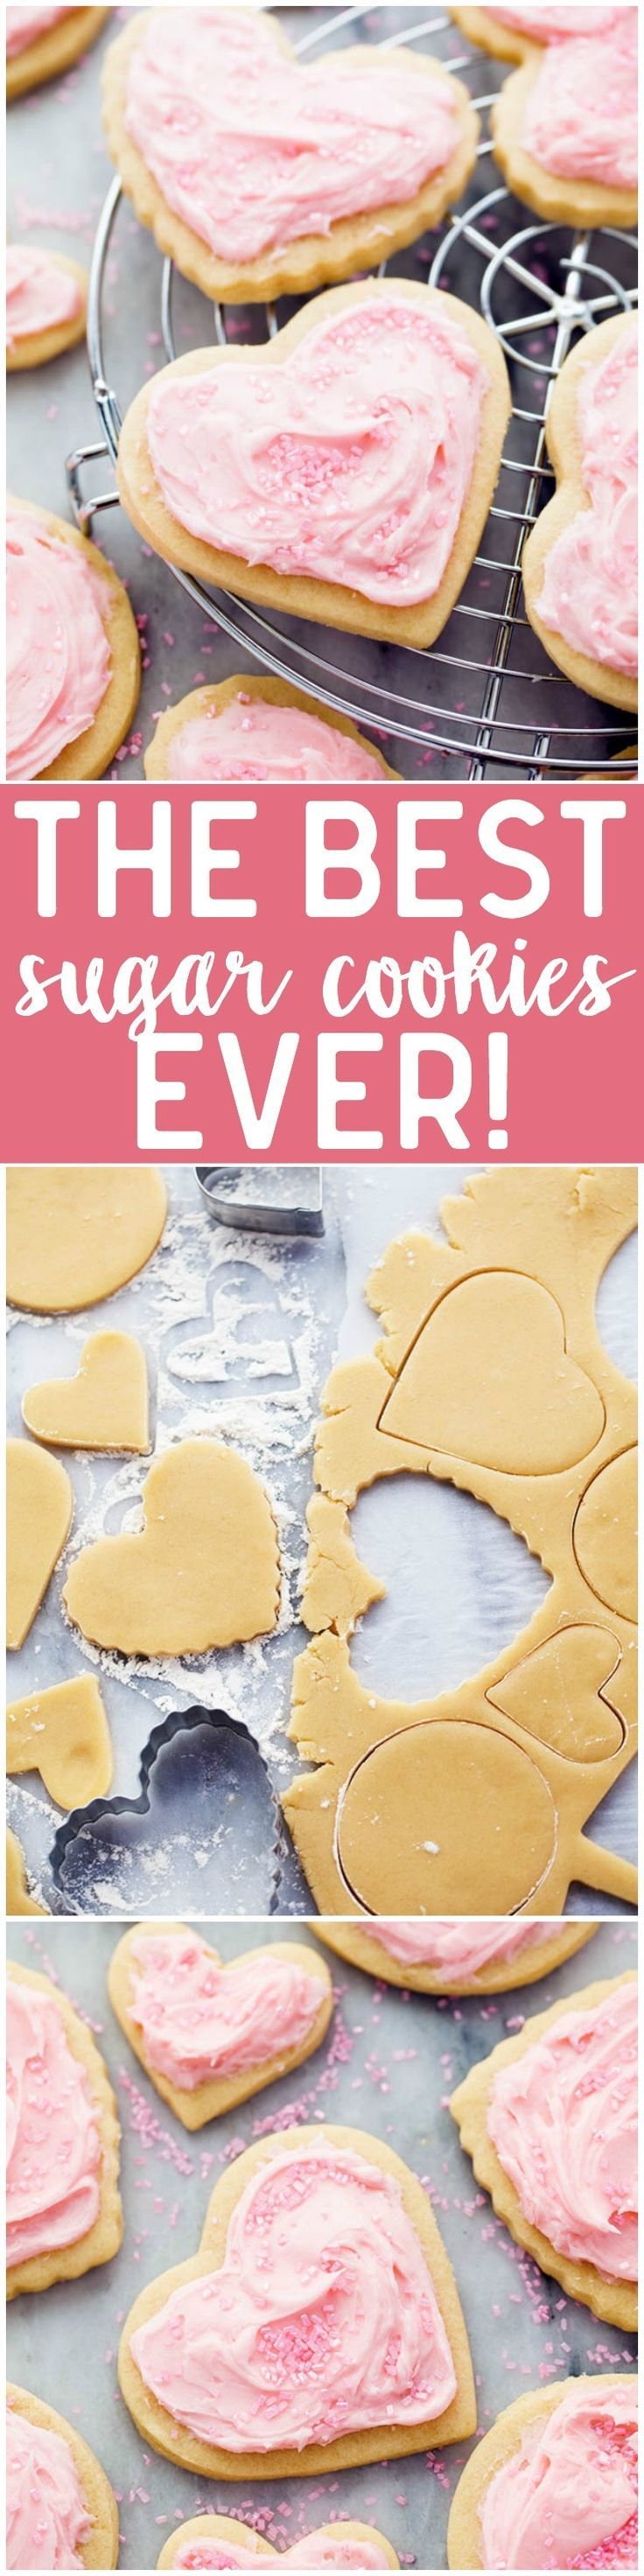 The BEST sugar cookie recipe that you will EVER make! therecipecritic.com